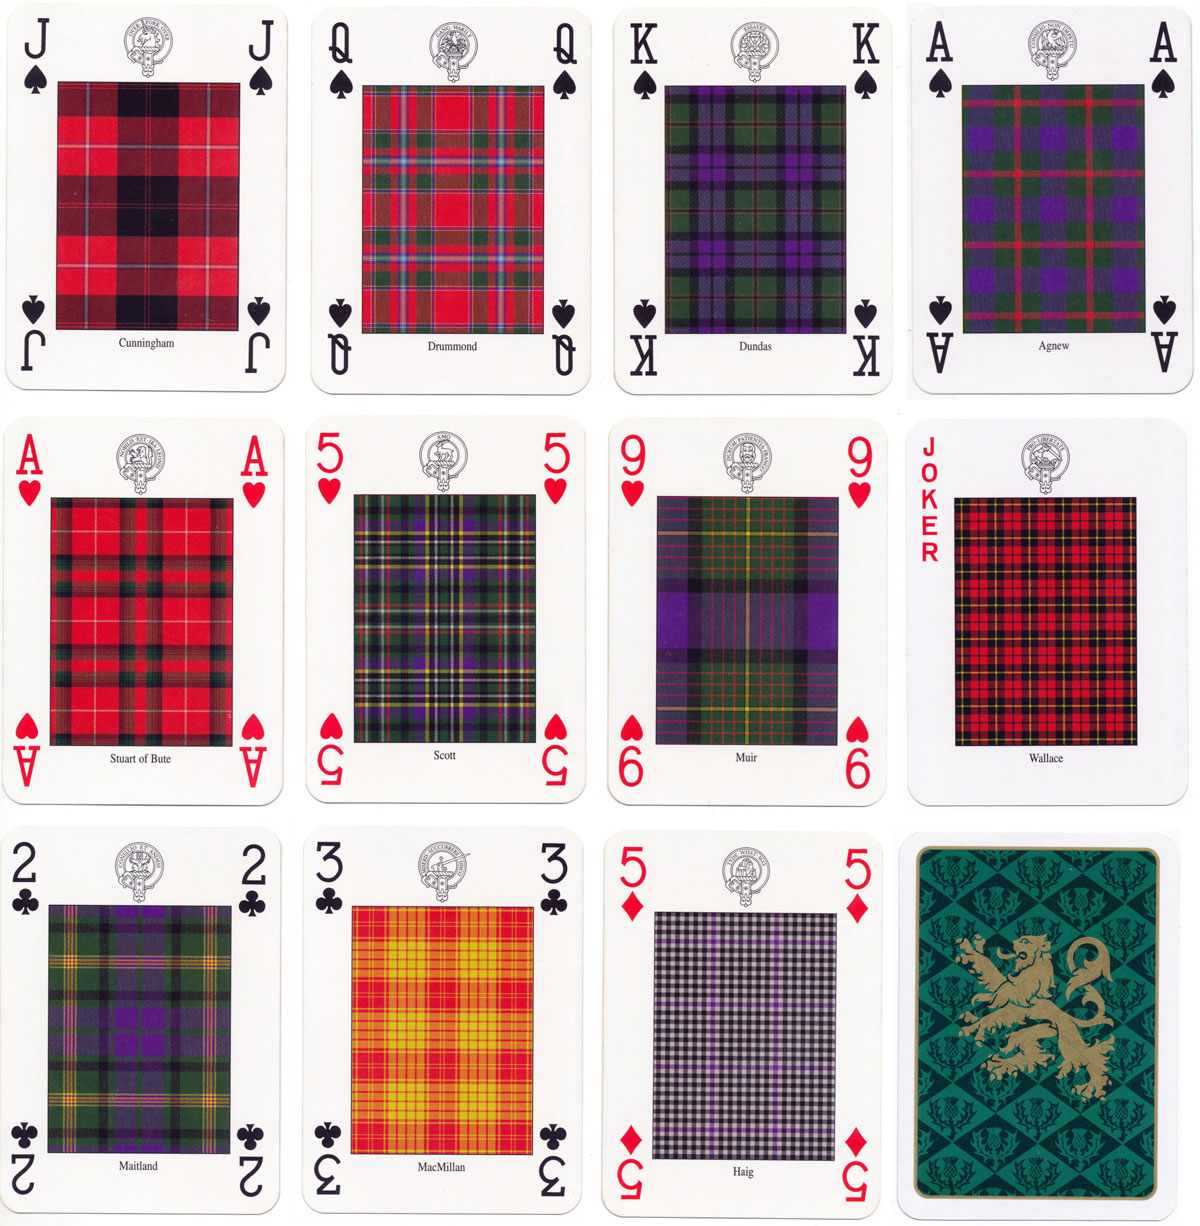 """Clans & Tartans of Scotland"" deck of cards designed and illustrated by Romilly Squire, 1997"